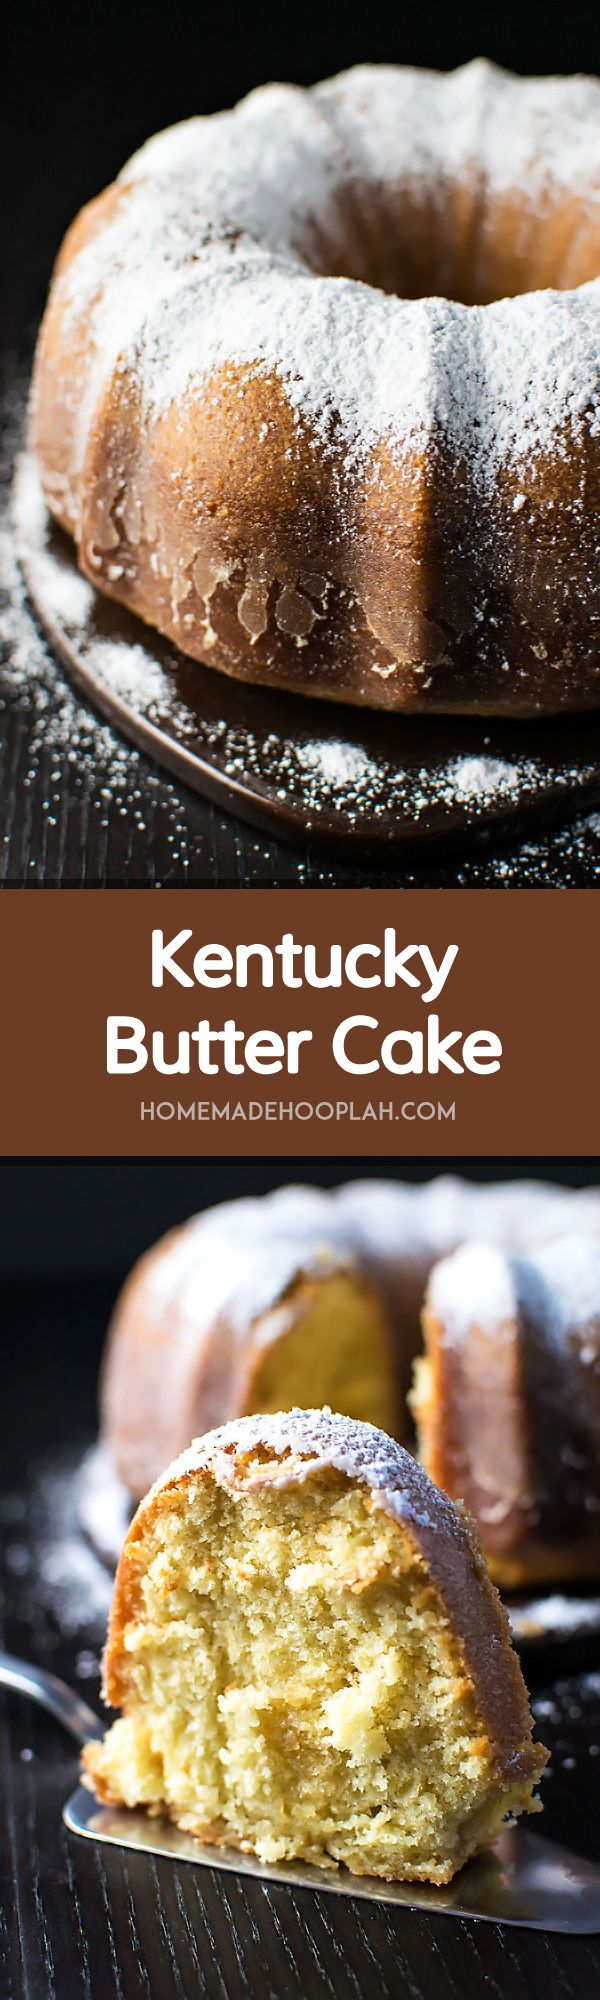 Kentucky Butter Cake! Extra moist and crumbly pound cake coated in a crispy sugar coating - fair warning, it's addictive! | HomemadeHooplah.com